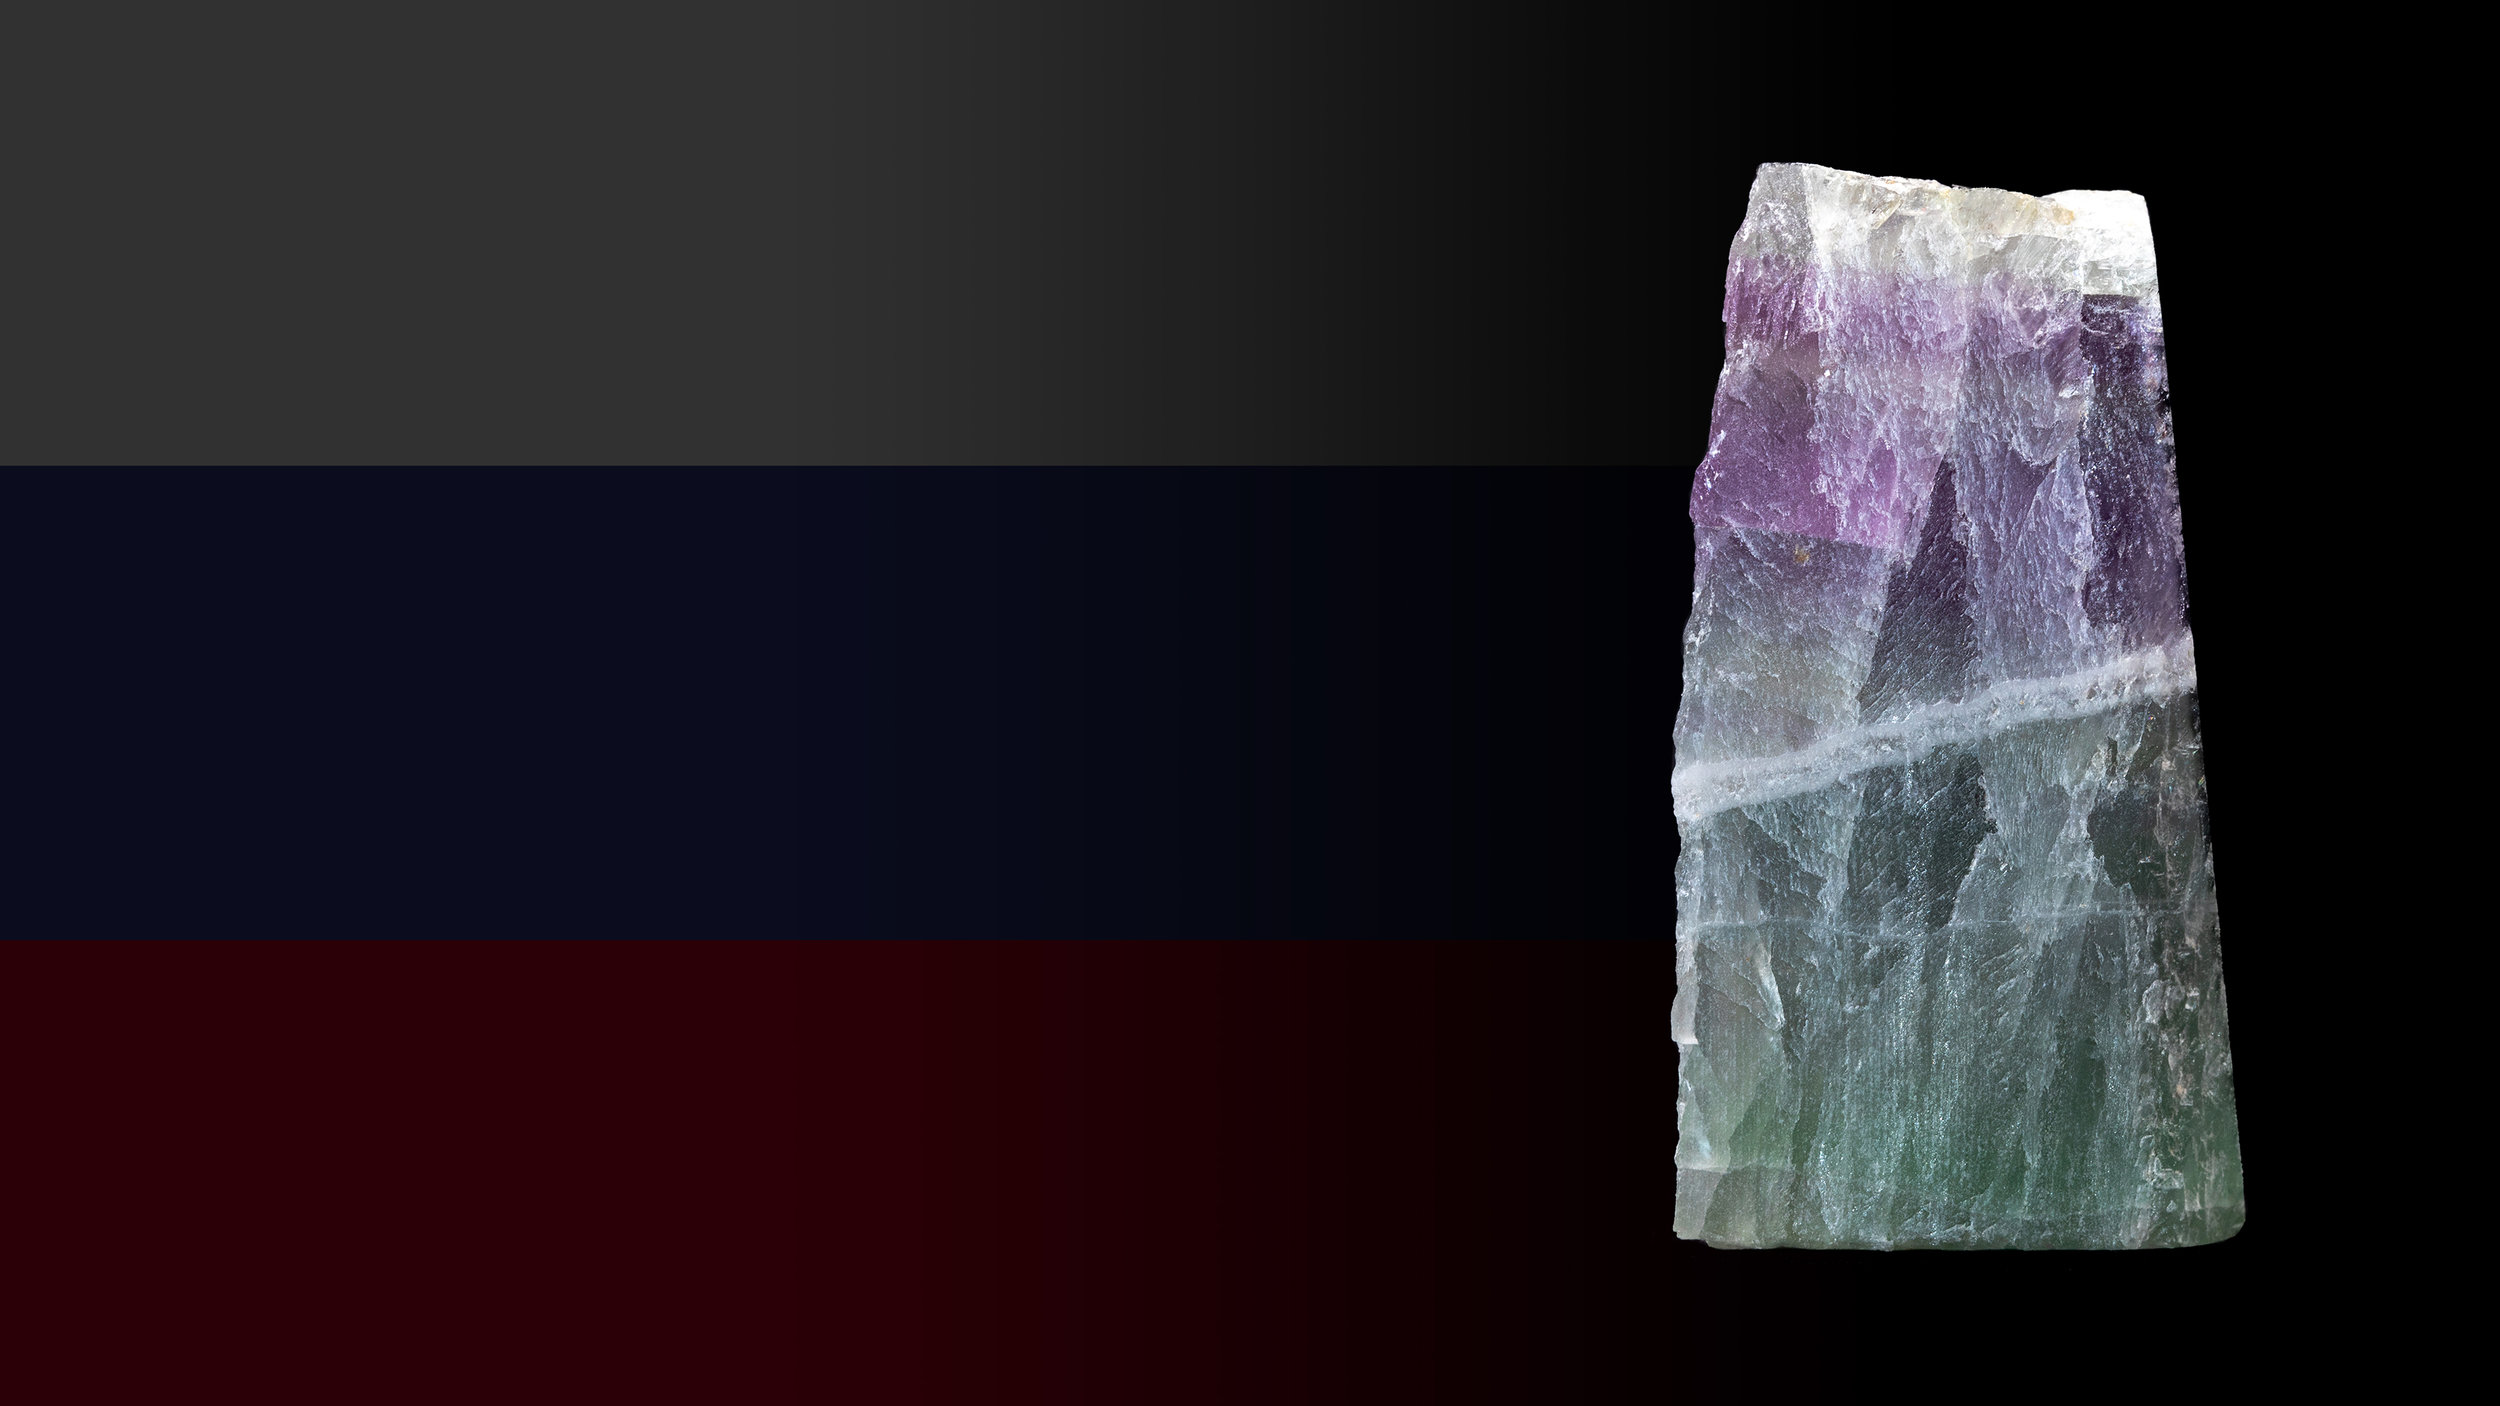 the Change stone - Alexandrite - RussiaIn 1839, the stones were identified and named